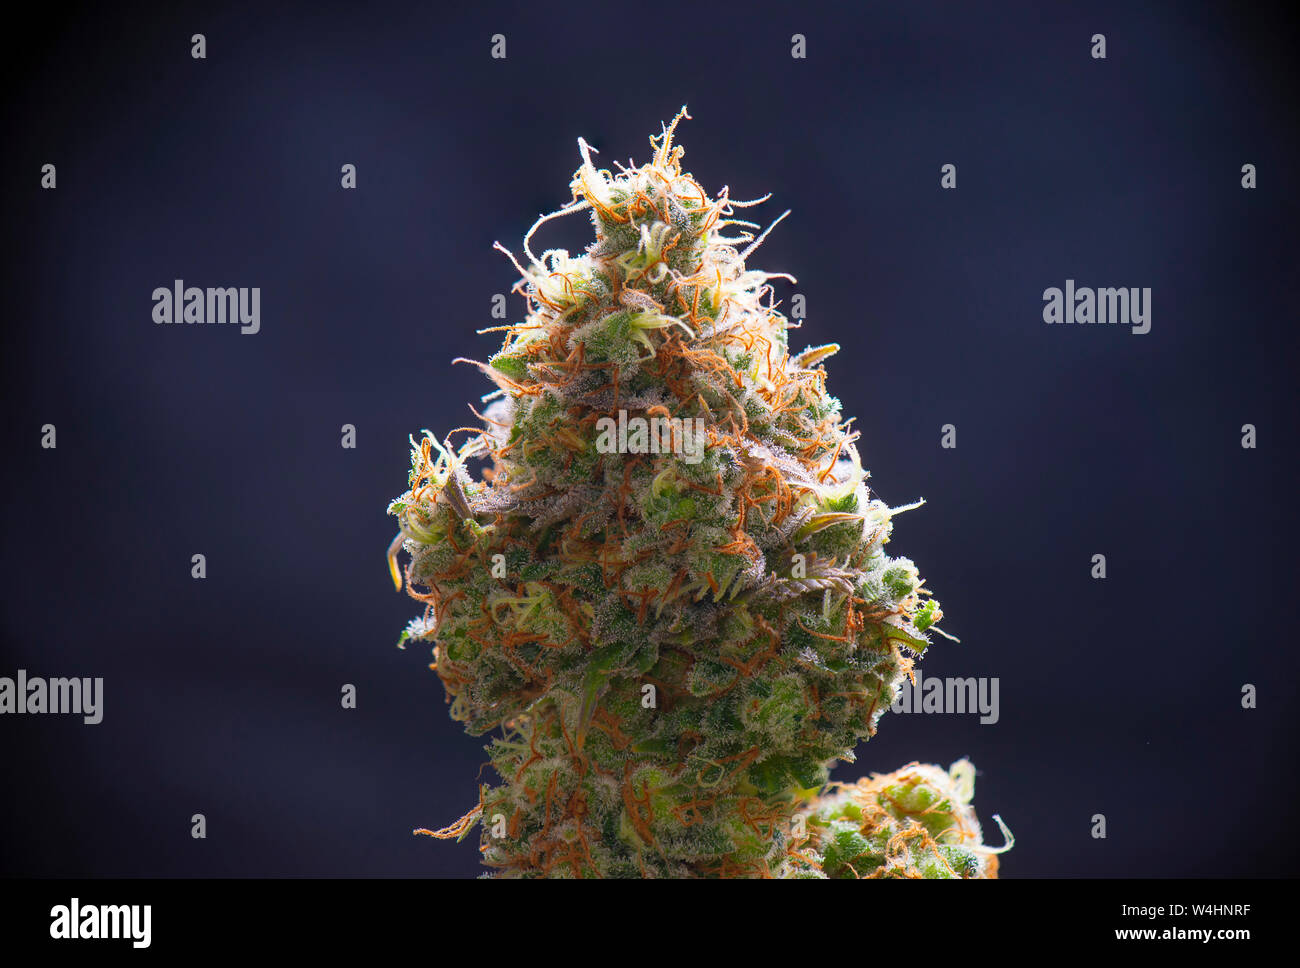 Macro detail of Cannabis flower (sour diesel strain) isolated over black background, medical marijuana concept Stock Photo